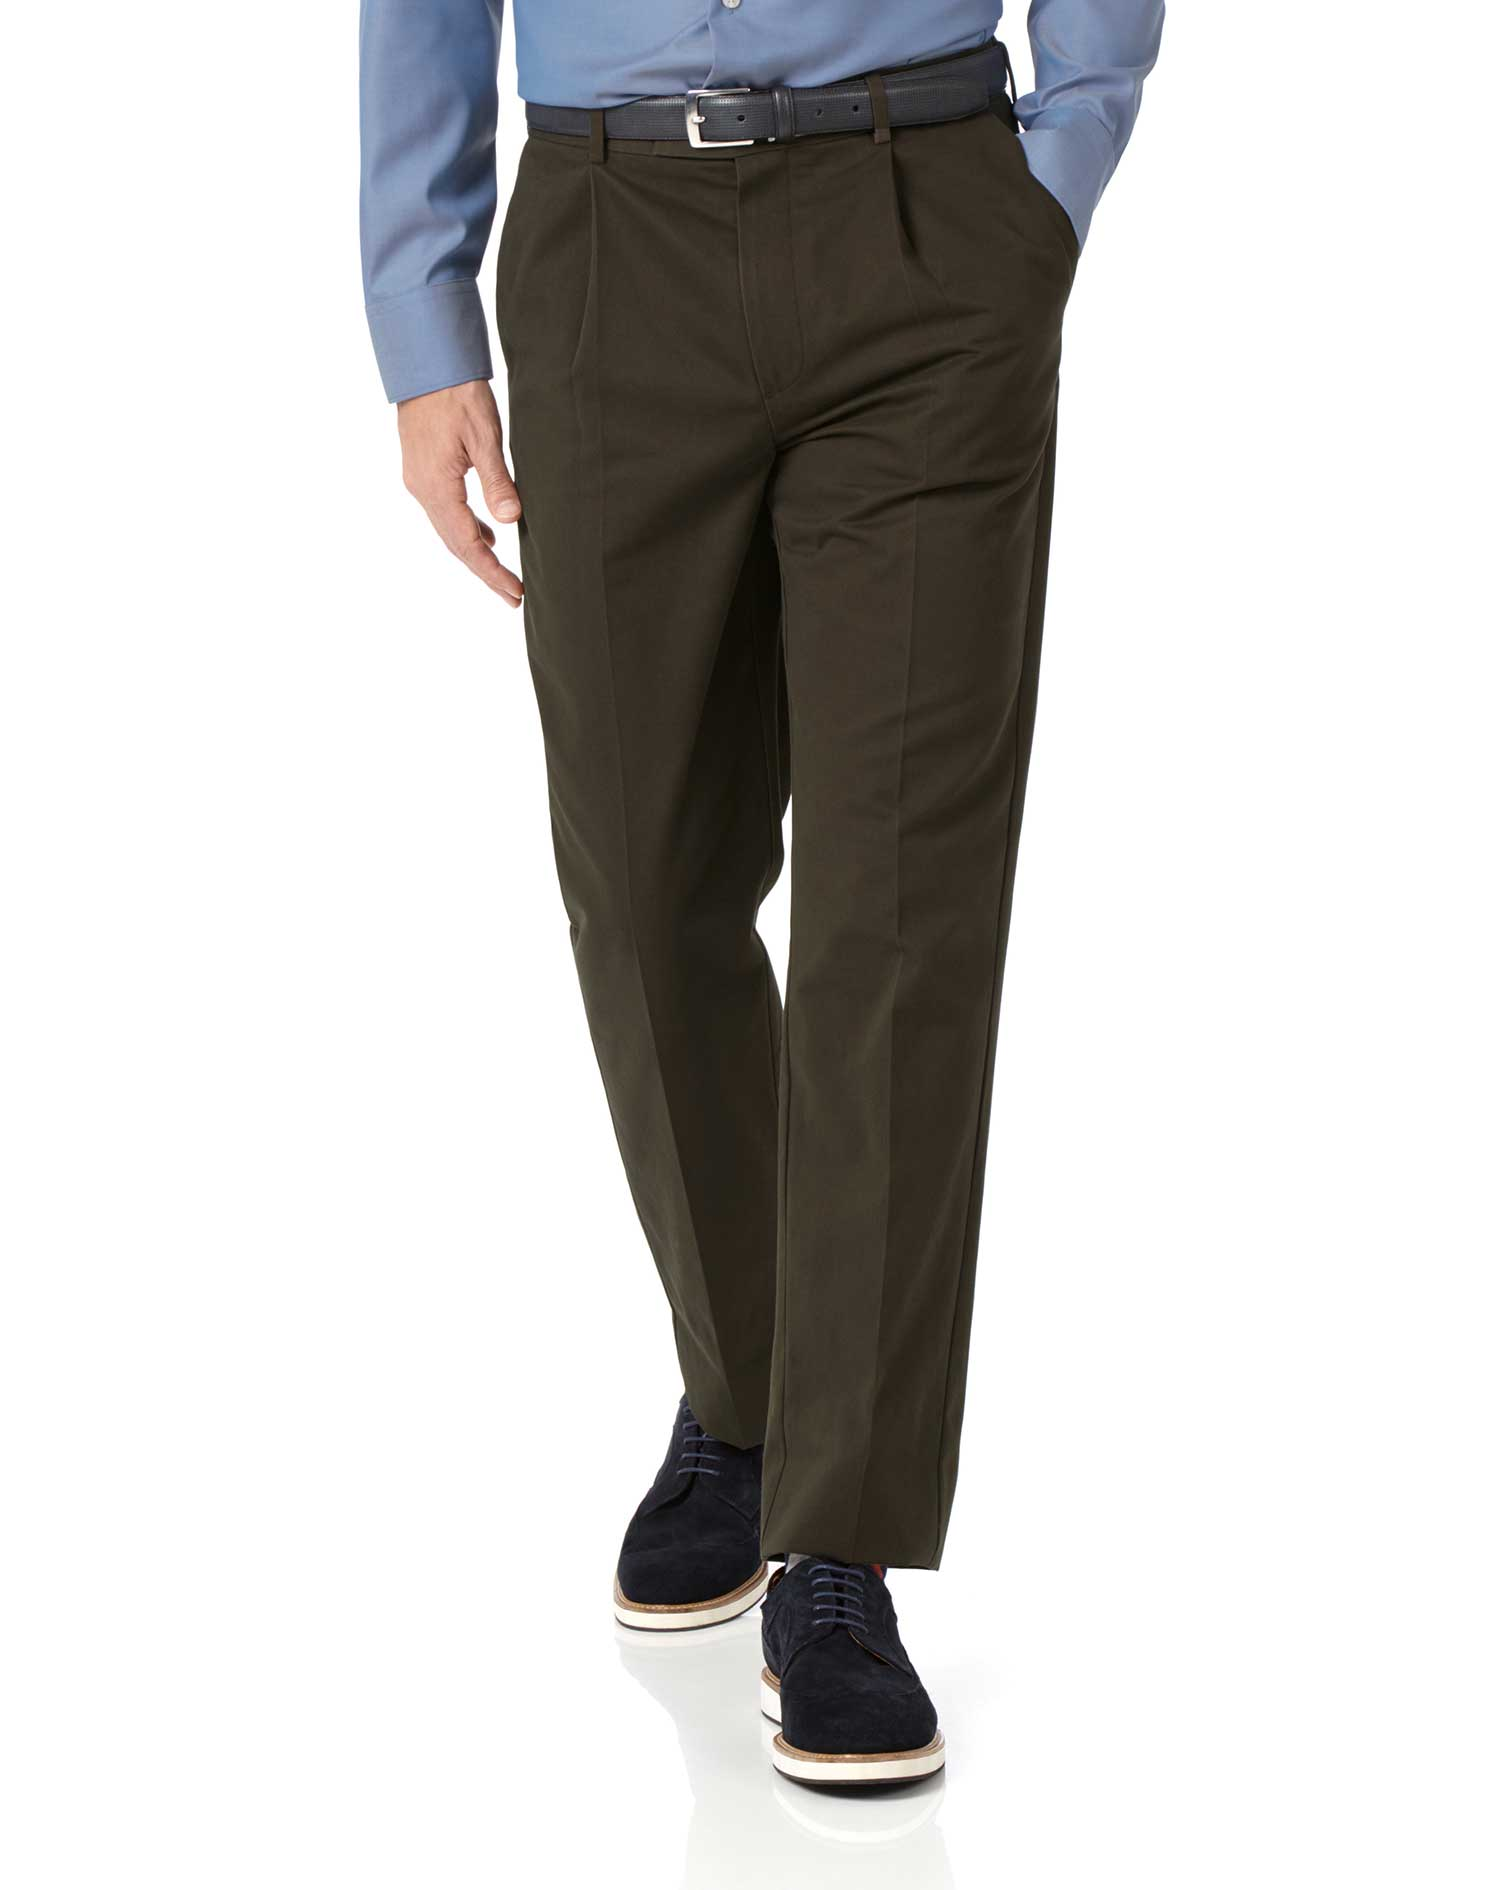 Brown Classic Fit Single Pleat Non-Iron Cotton Chino Trousers Size W36 L34 by Charles Tyrwhitt